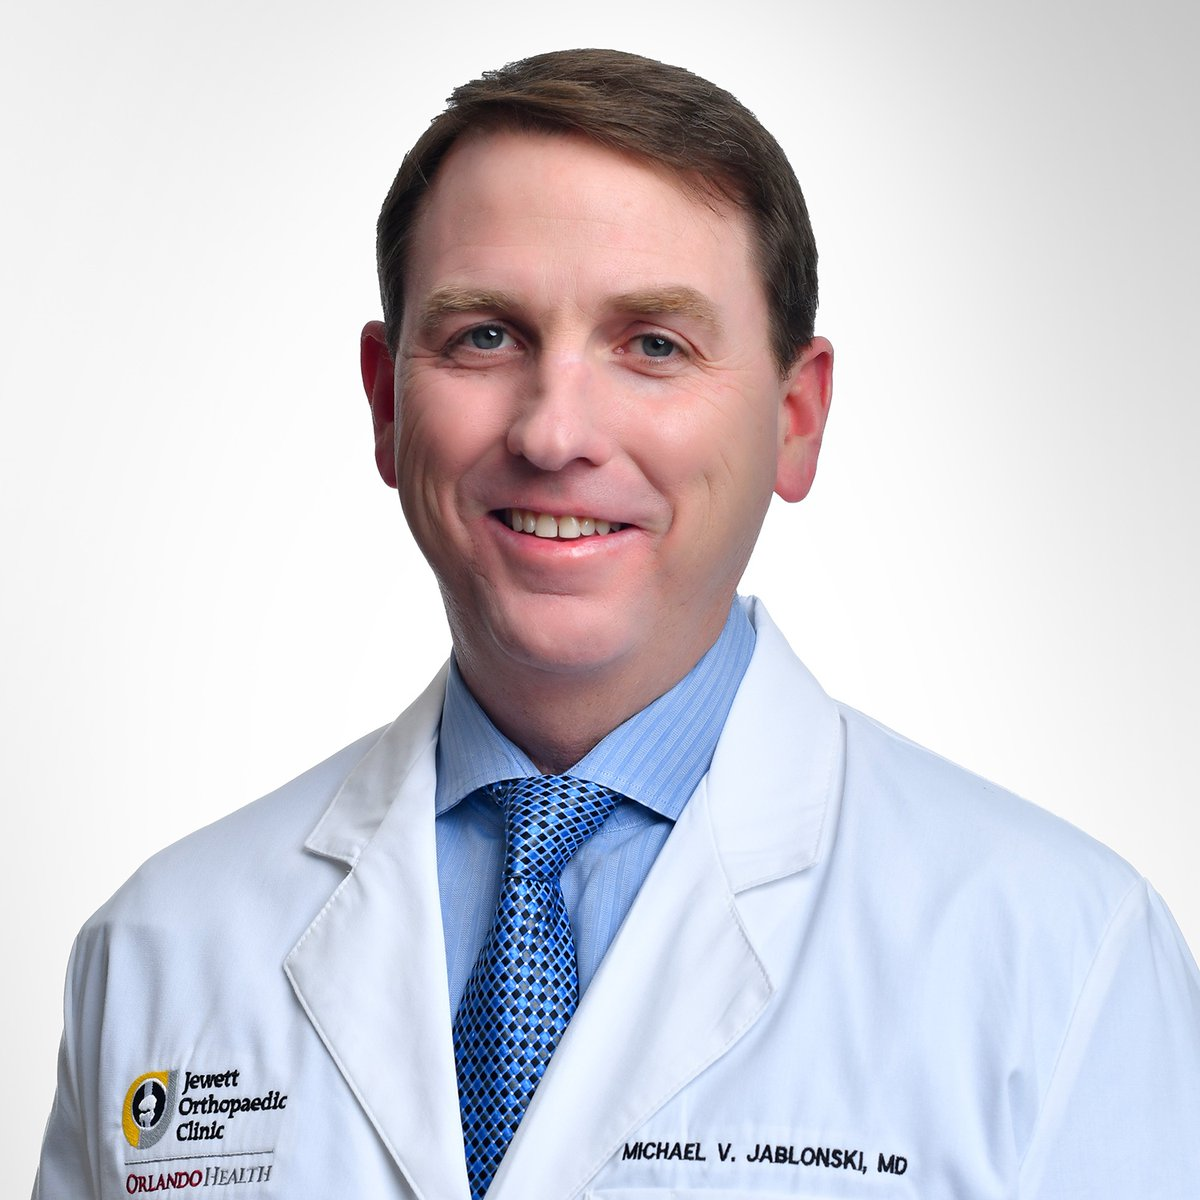 Our own Dr. Michael V. Jablonski, a board-certified orthopedic surgeon and president of Orlando Health Jewett Orthopedic Institute, has been named the chief medical officer of the @2022USAGames.  #ChooseOrlandoHealth #ShineAsOne https://t.co/3Ip6njDOs4